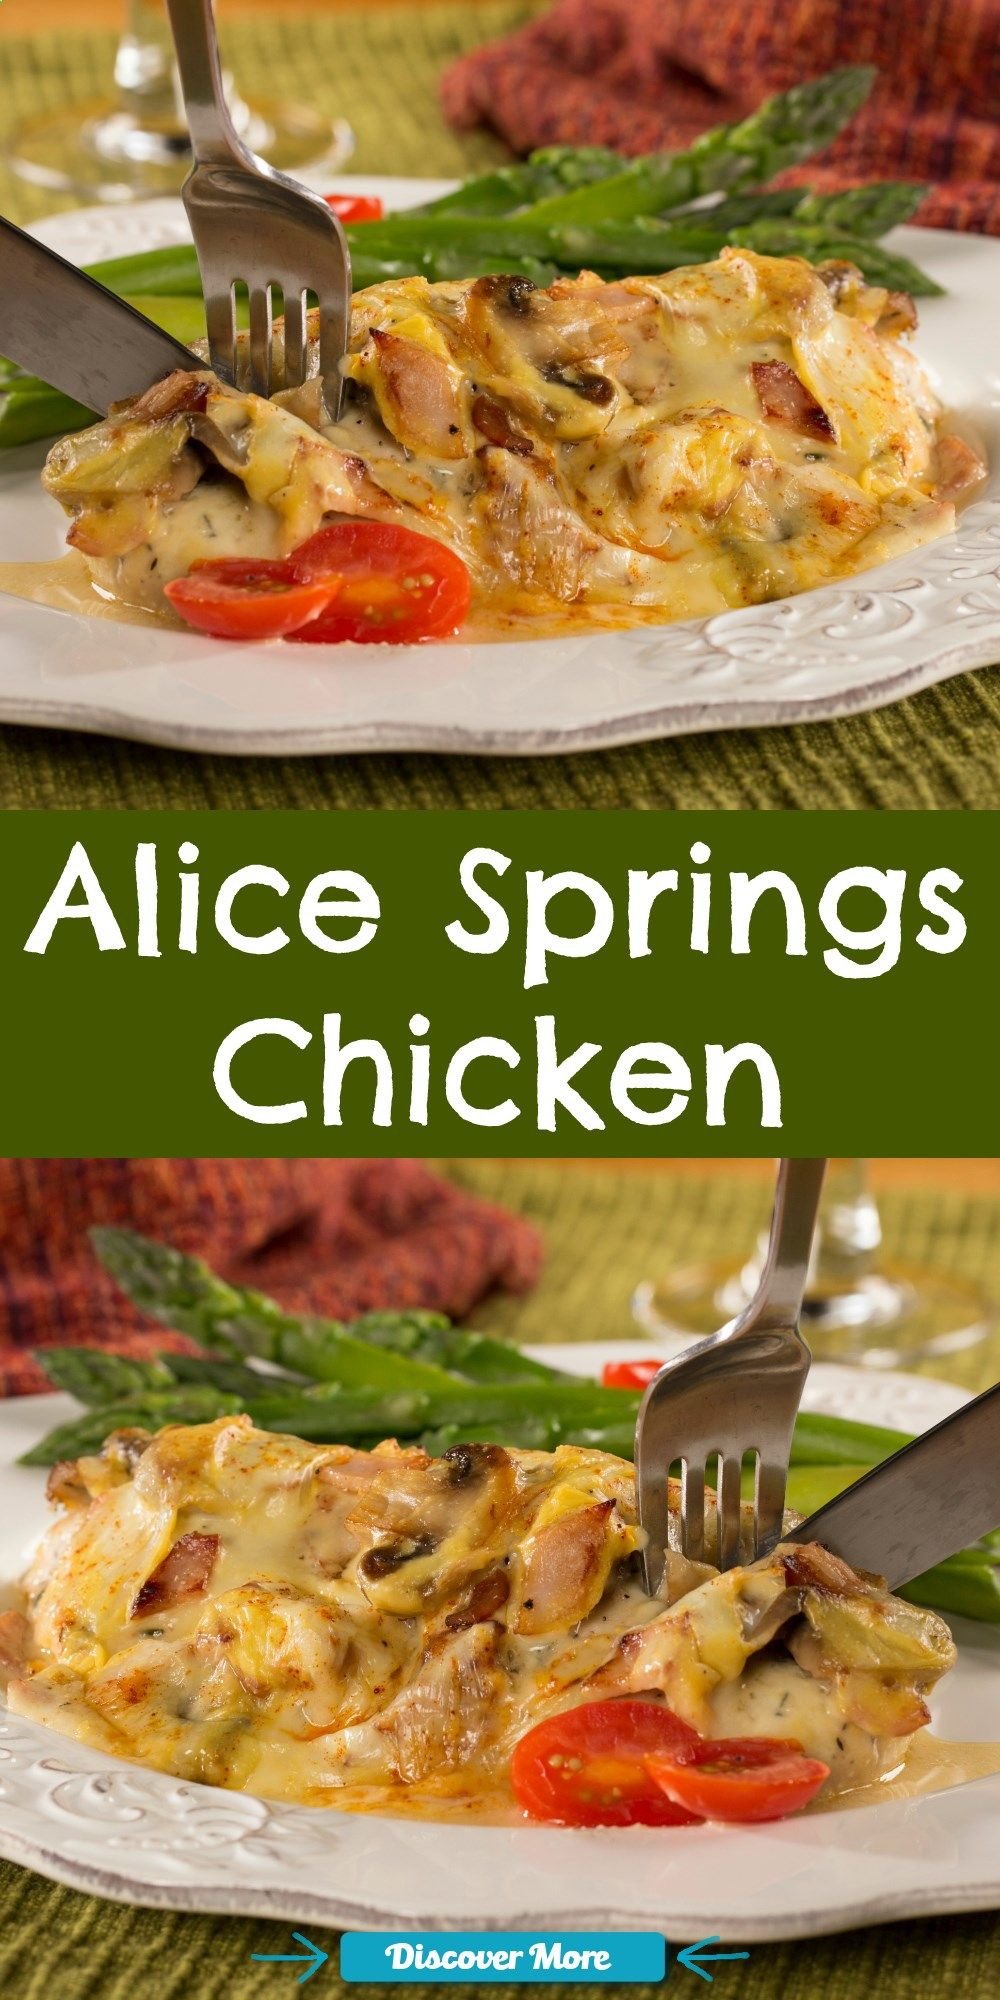 Restaurant recipes like our version of Alice Springs Chicken will keep em coming back for more and more!